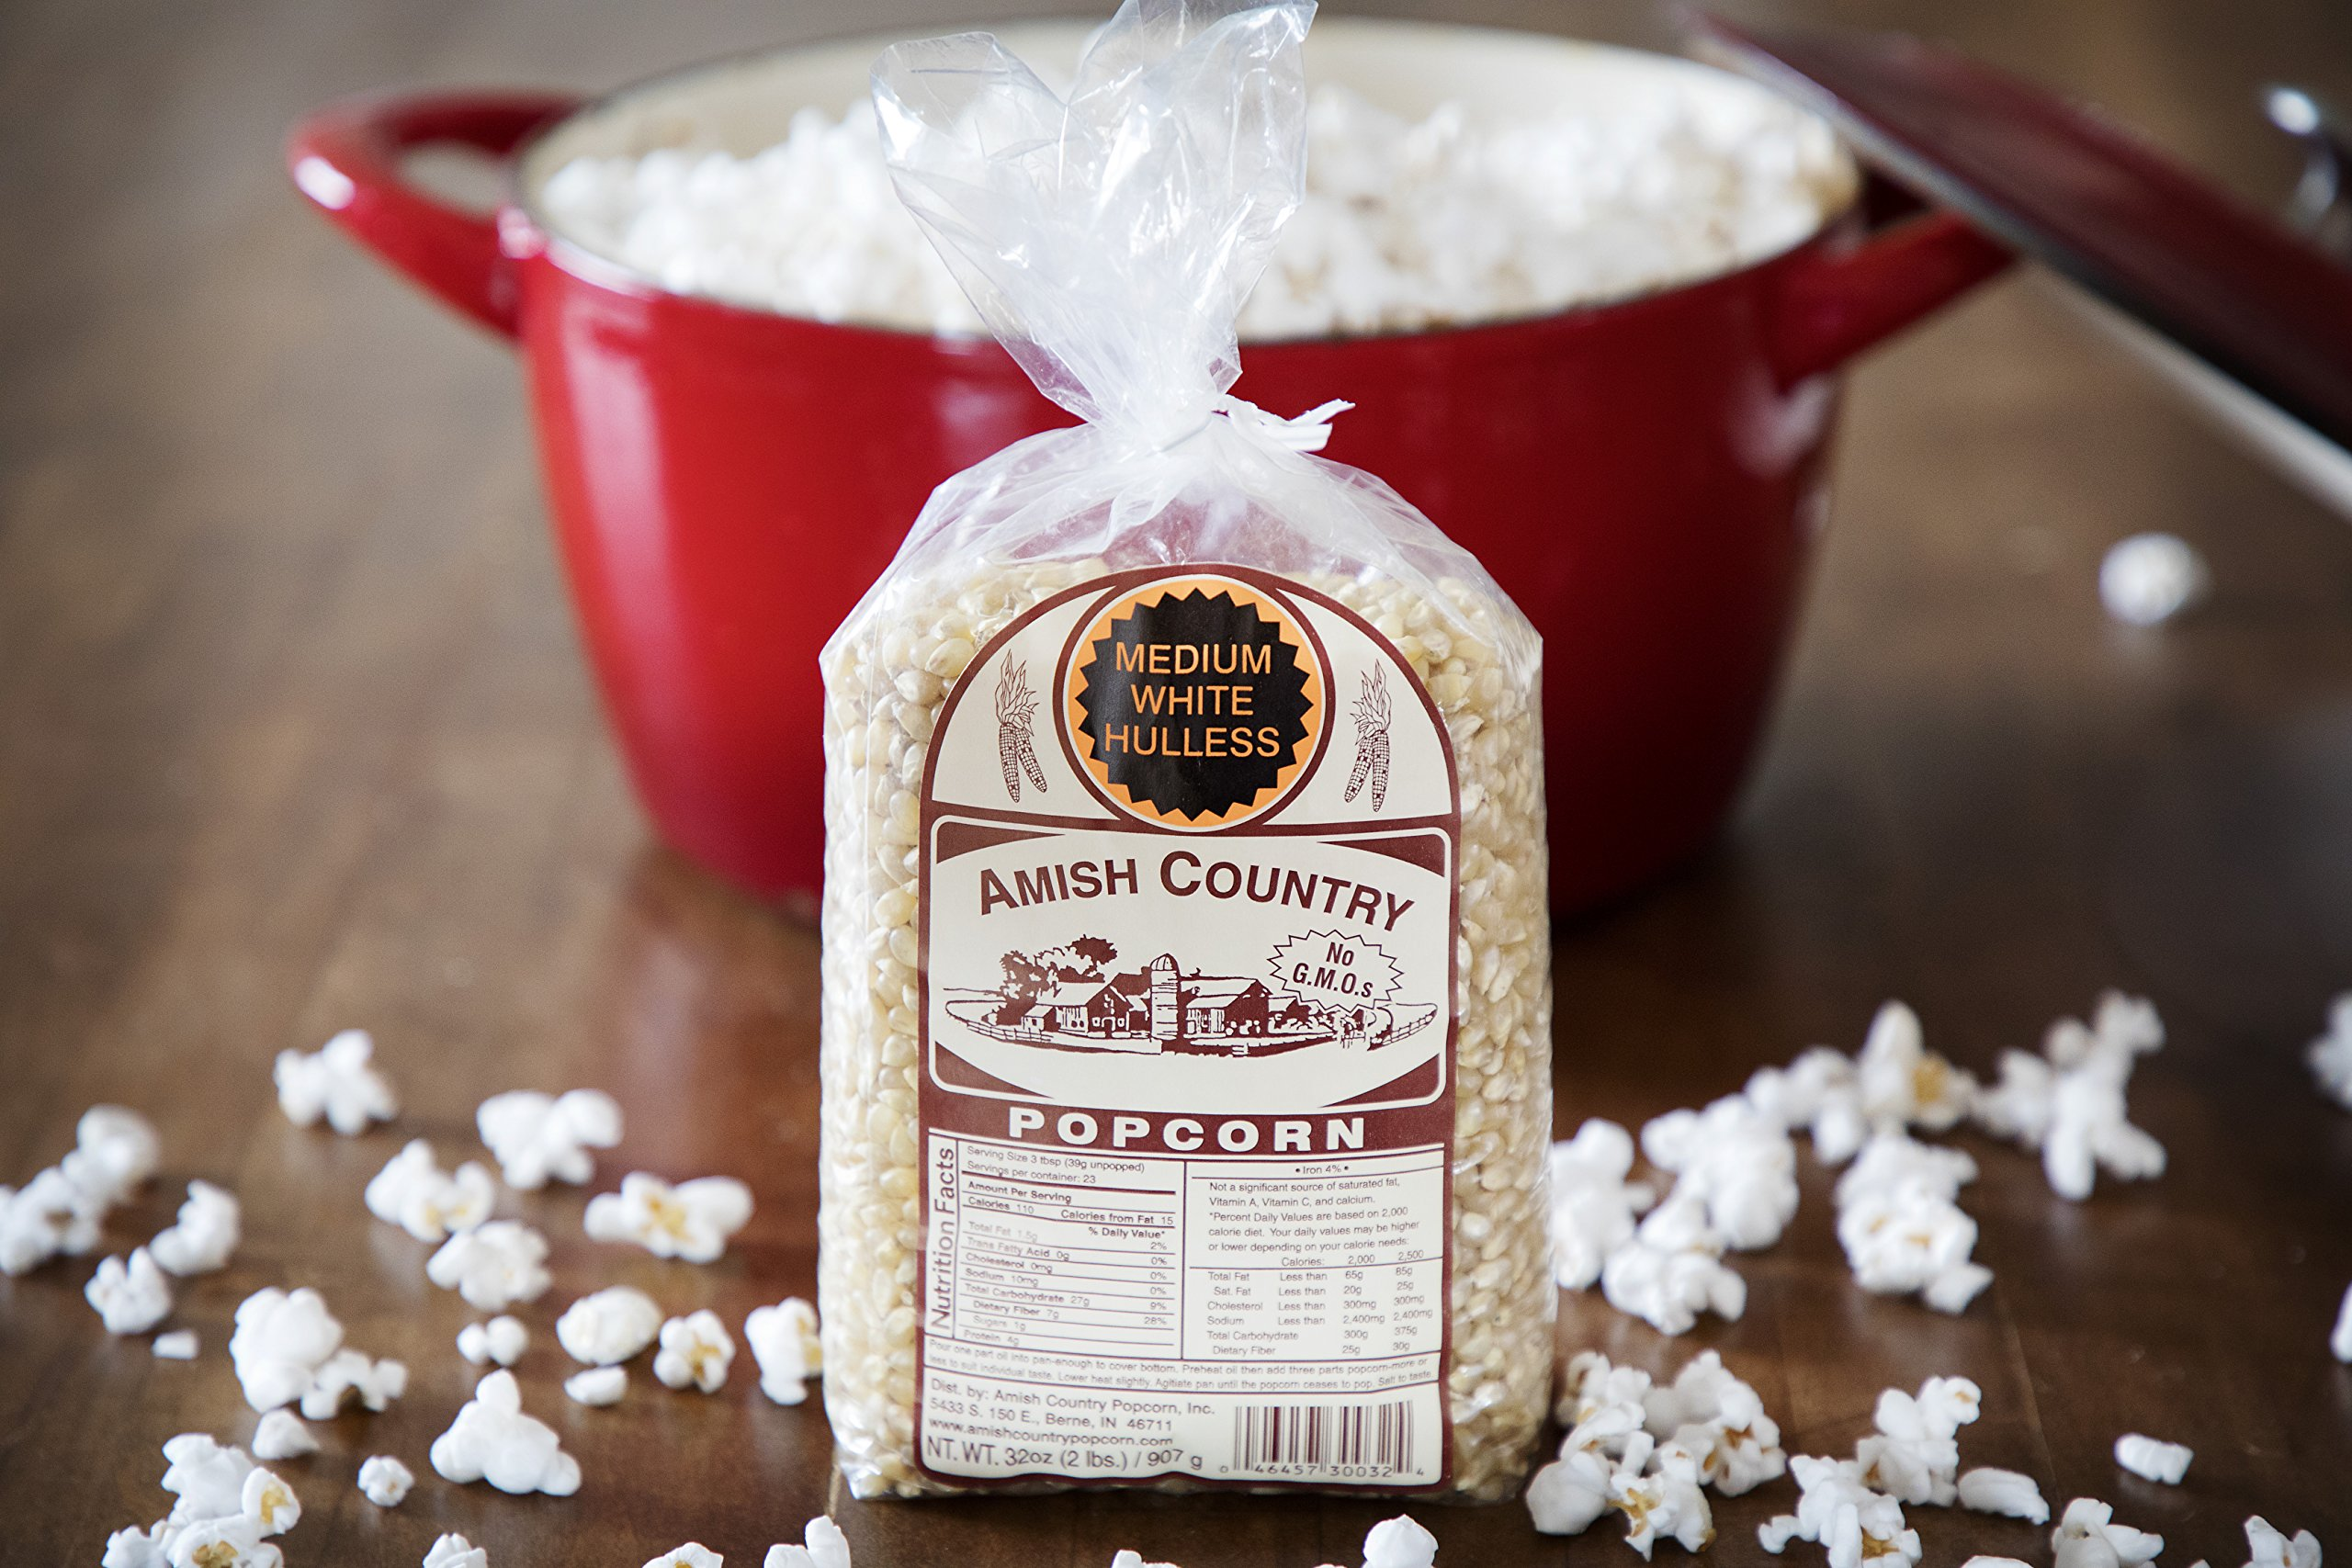 Amish Country Popcorn - Medium White Popcorn (2 Pound Bag) Old Fashioned, Non GMO, and Gluten Free - with Recipe Guide by Amish Country Popcorn (Image #3)